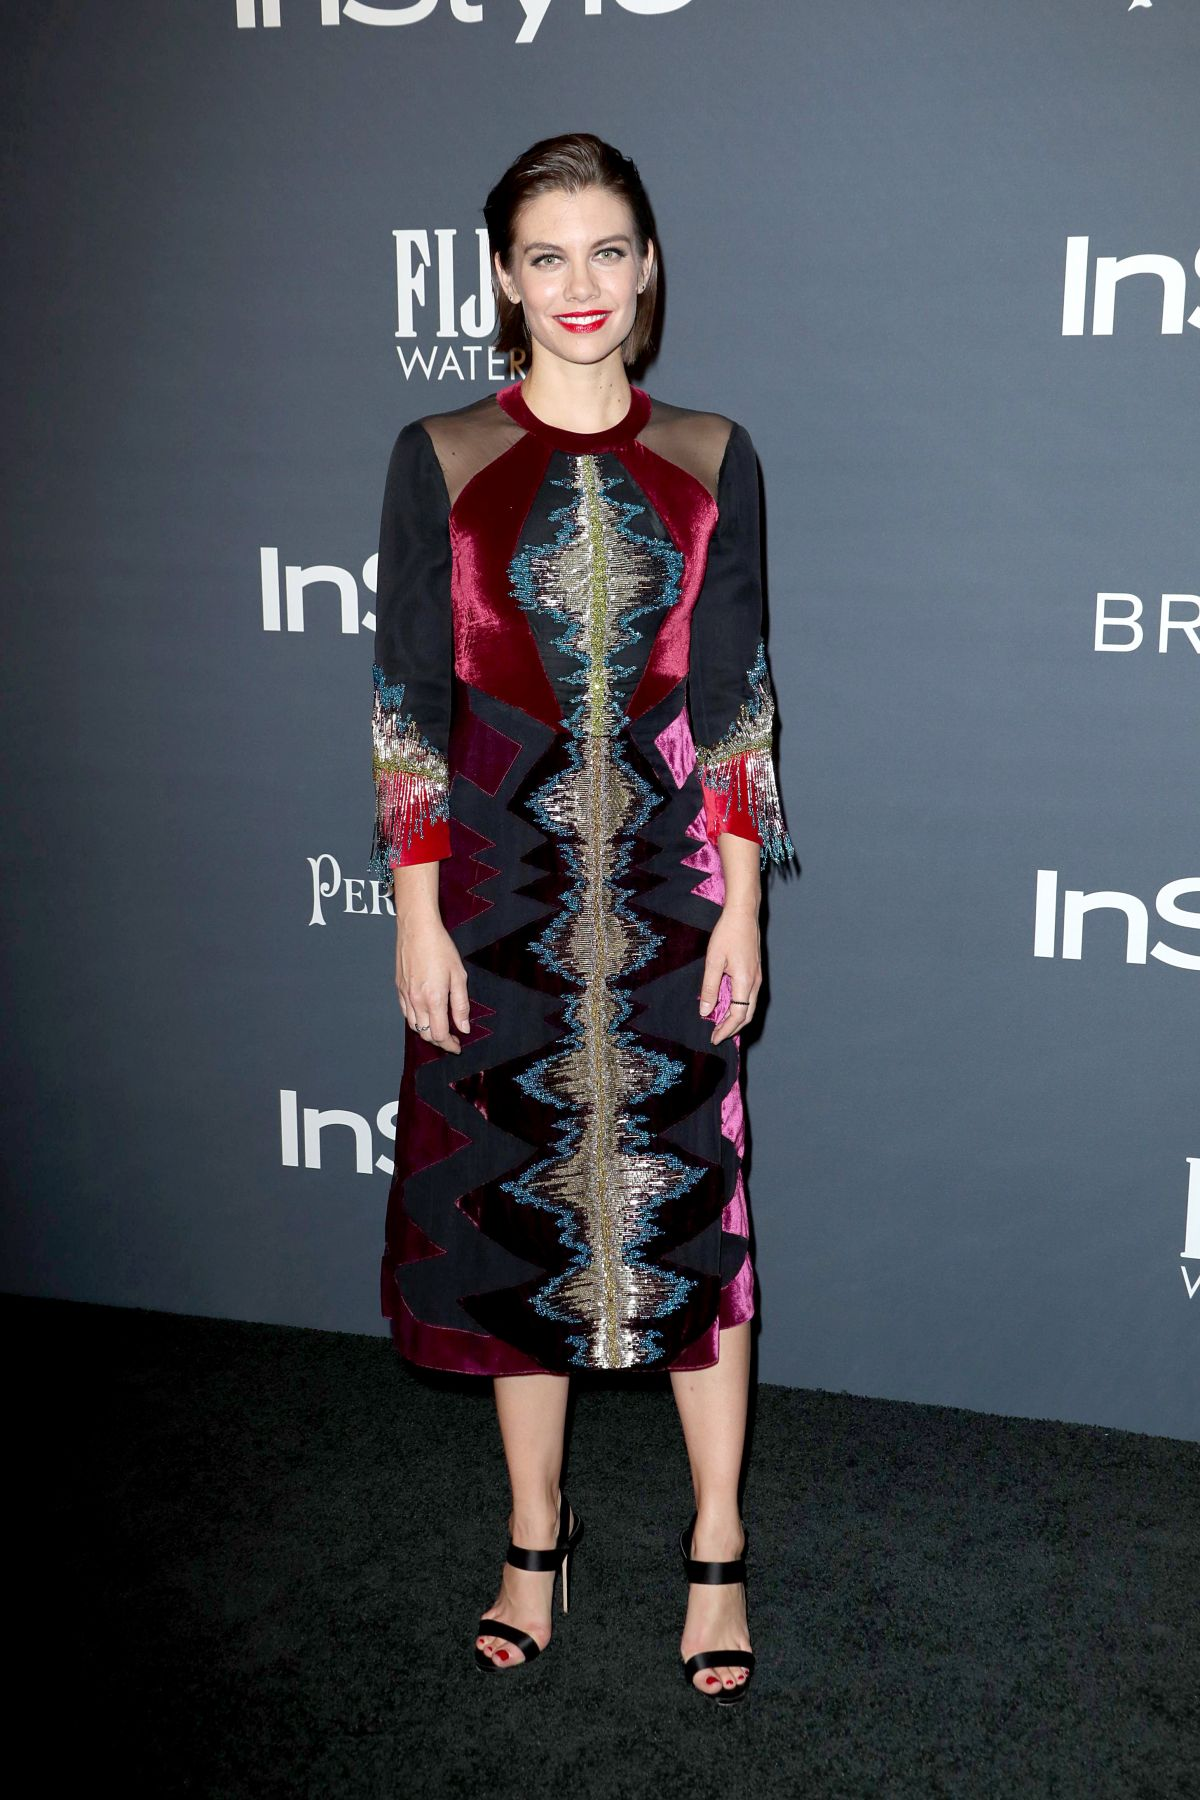 Lauren Cohan At 3rd Annual InStyle Awards in Los Angeles